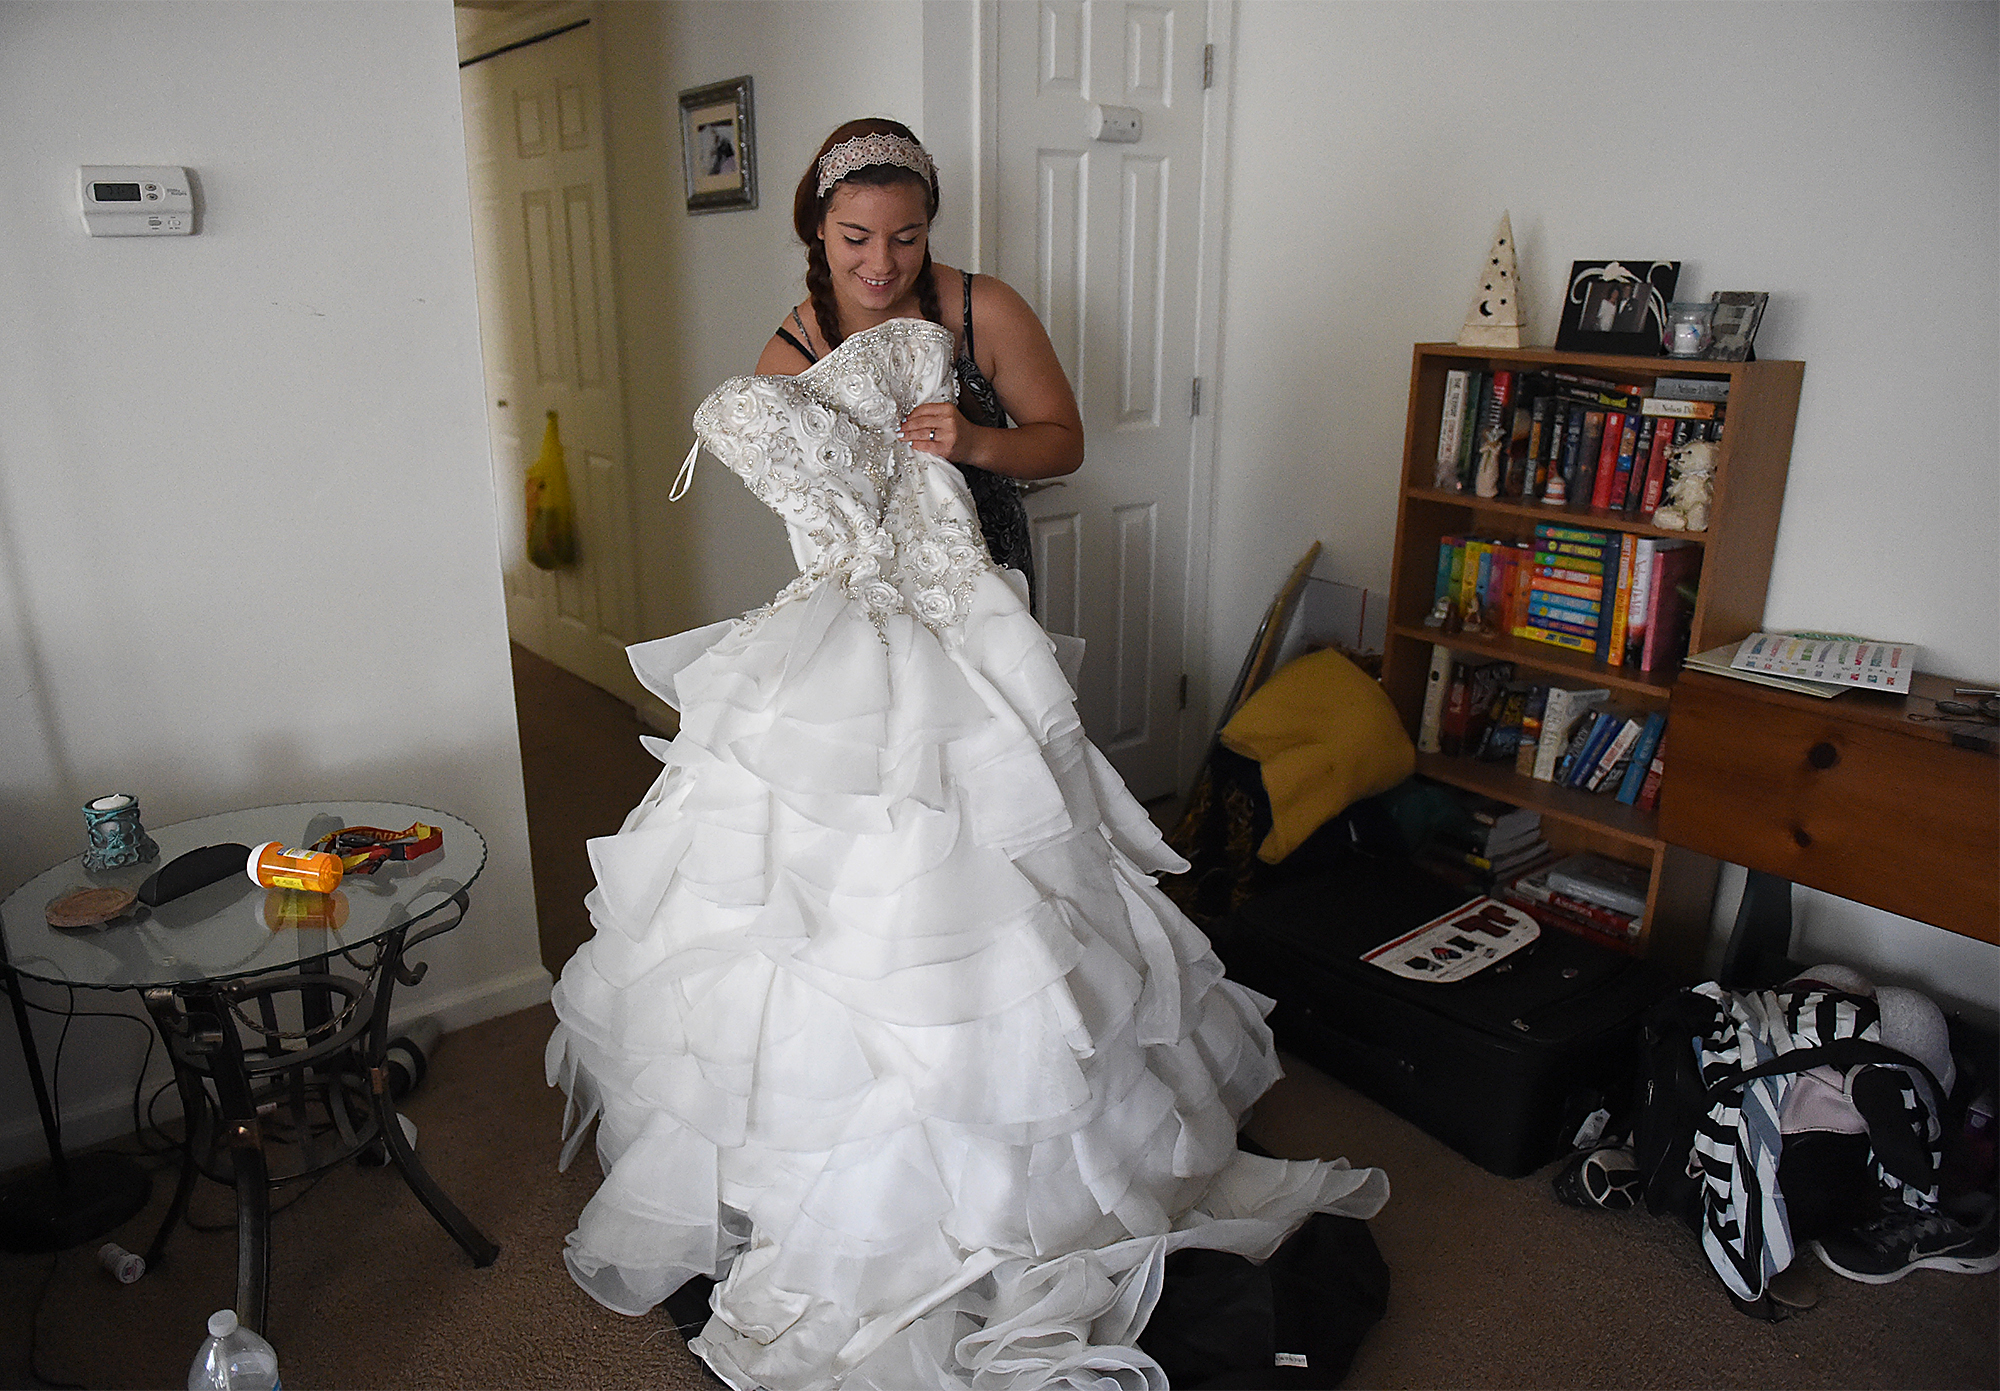 Dee Hubay shows off her wedding dress at her mom's apartment in Northeast Philadelphia after dropping off fiancé Dan Bryan at the Philadelphia International Airport to return to his MOS school on Wednesday, July 22, 2015.  The dress was given to her by a former classmate, who wore it as a prom dress. According to Hubay, the classmate is also now in a Delayed Entry Program for the Marine Corps, which is what she did as well.